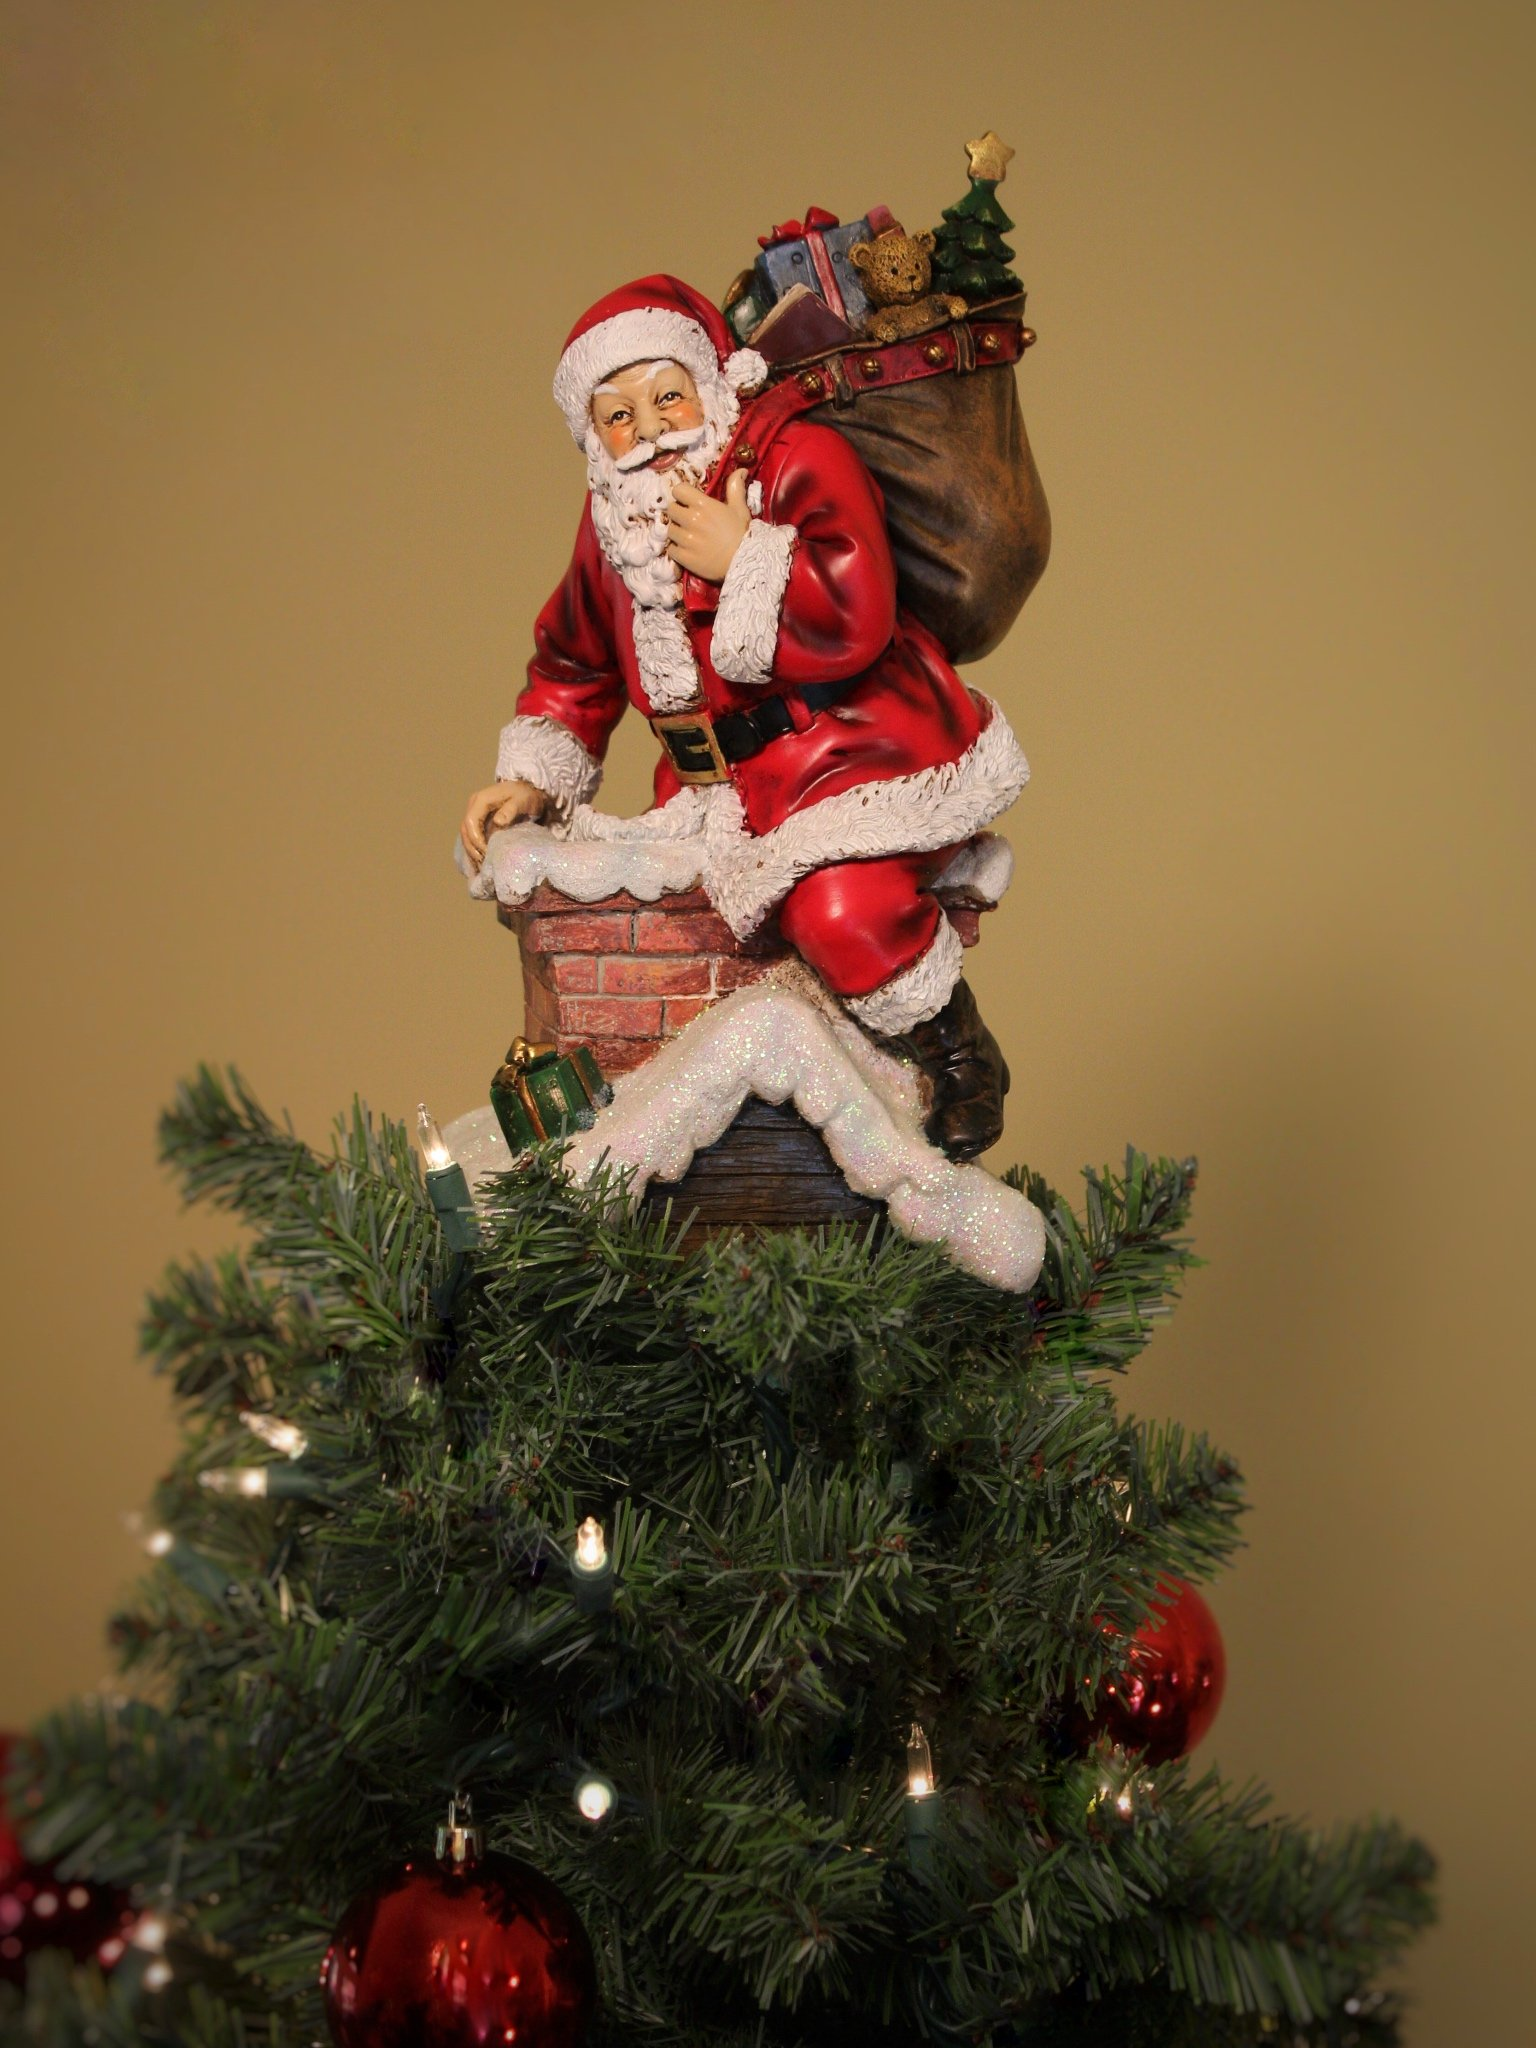 Summit Arbor Santa in Chimney Delivering Gifts Christmas Tree Topper